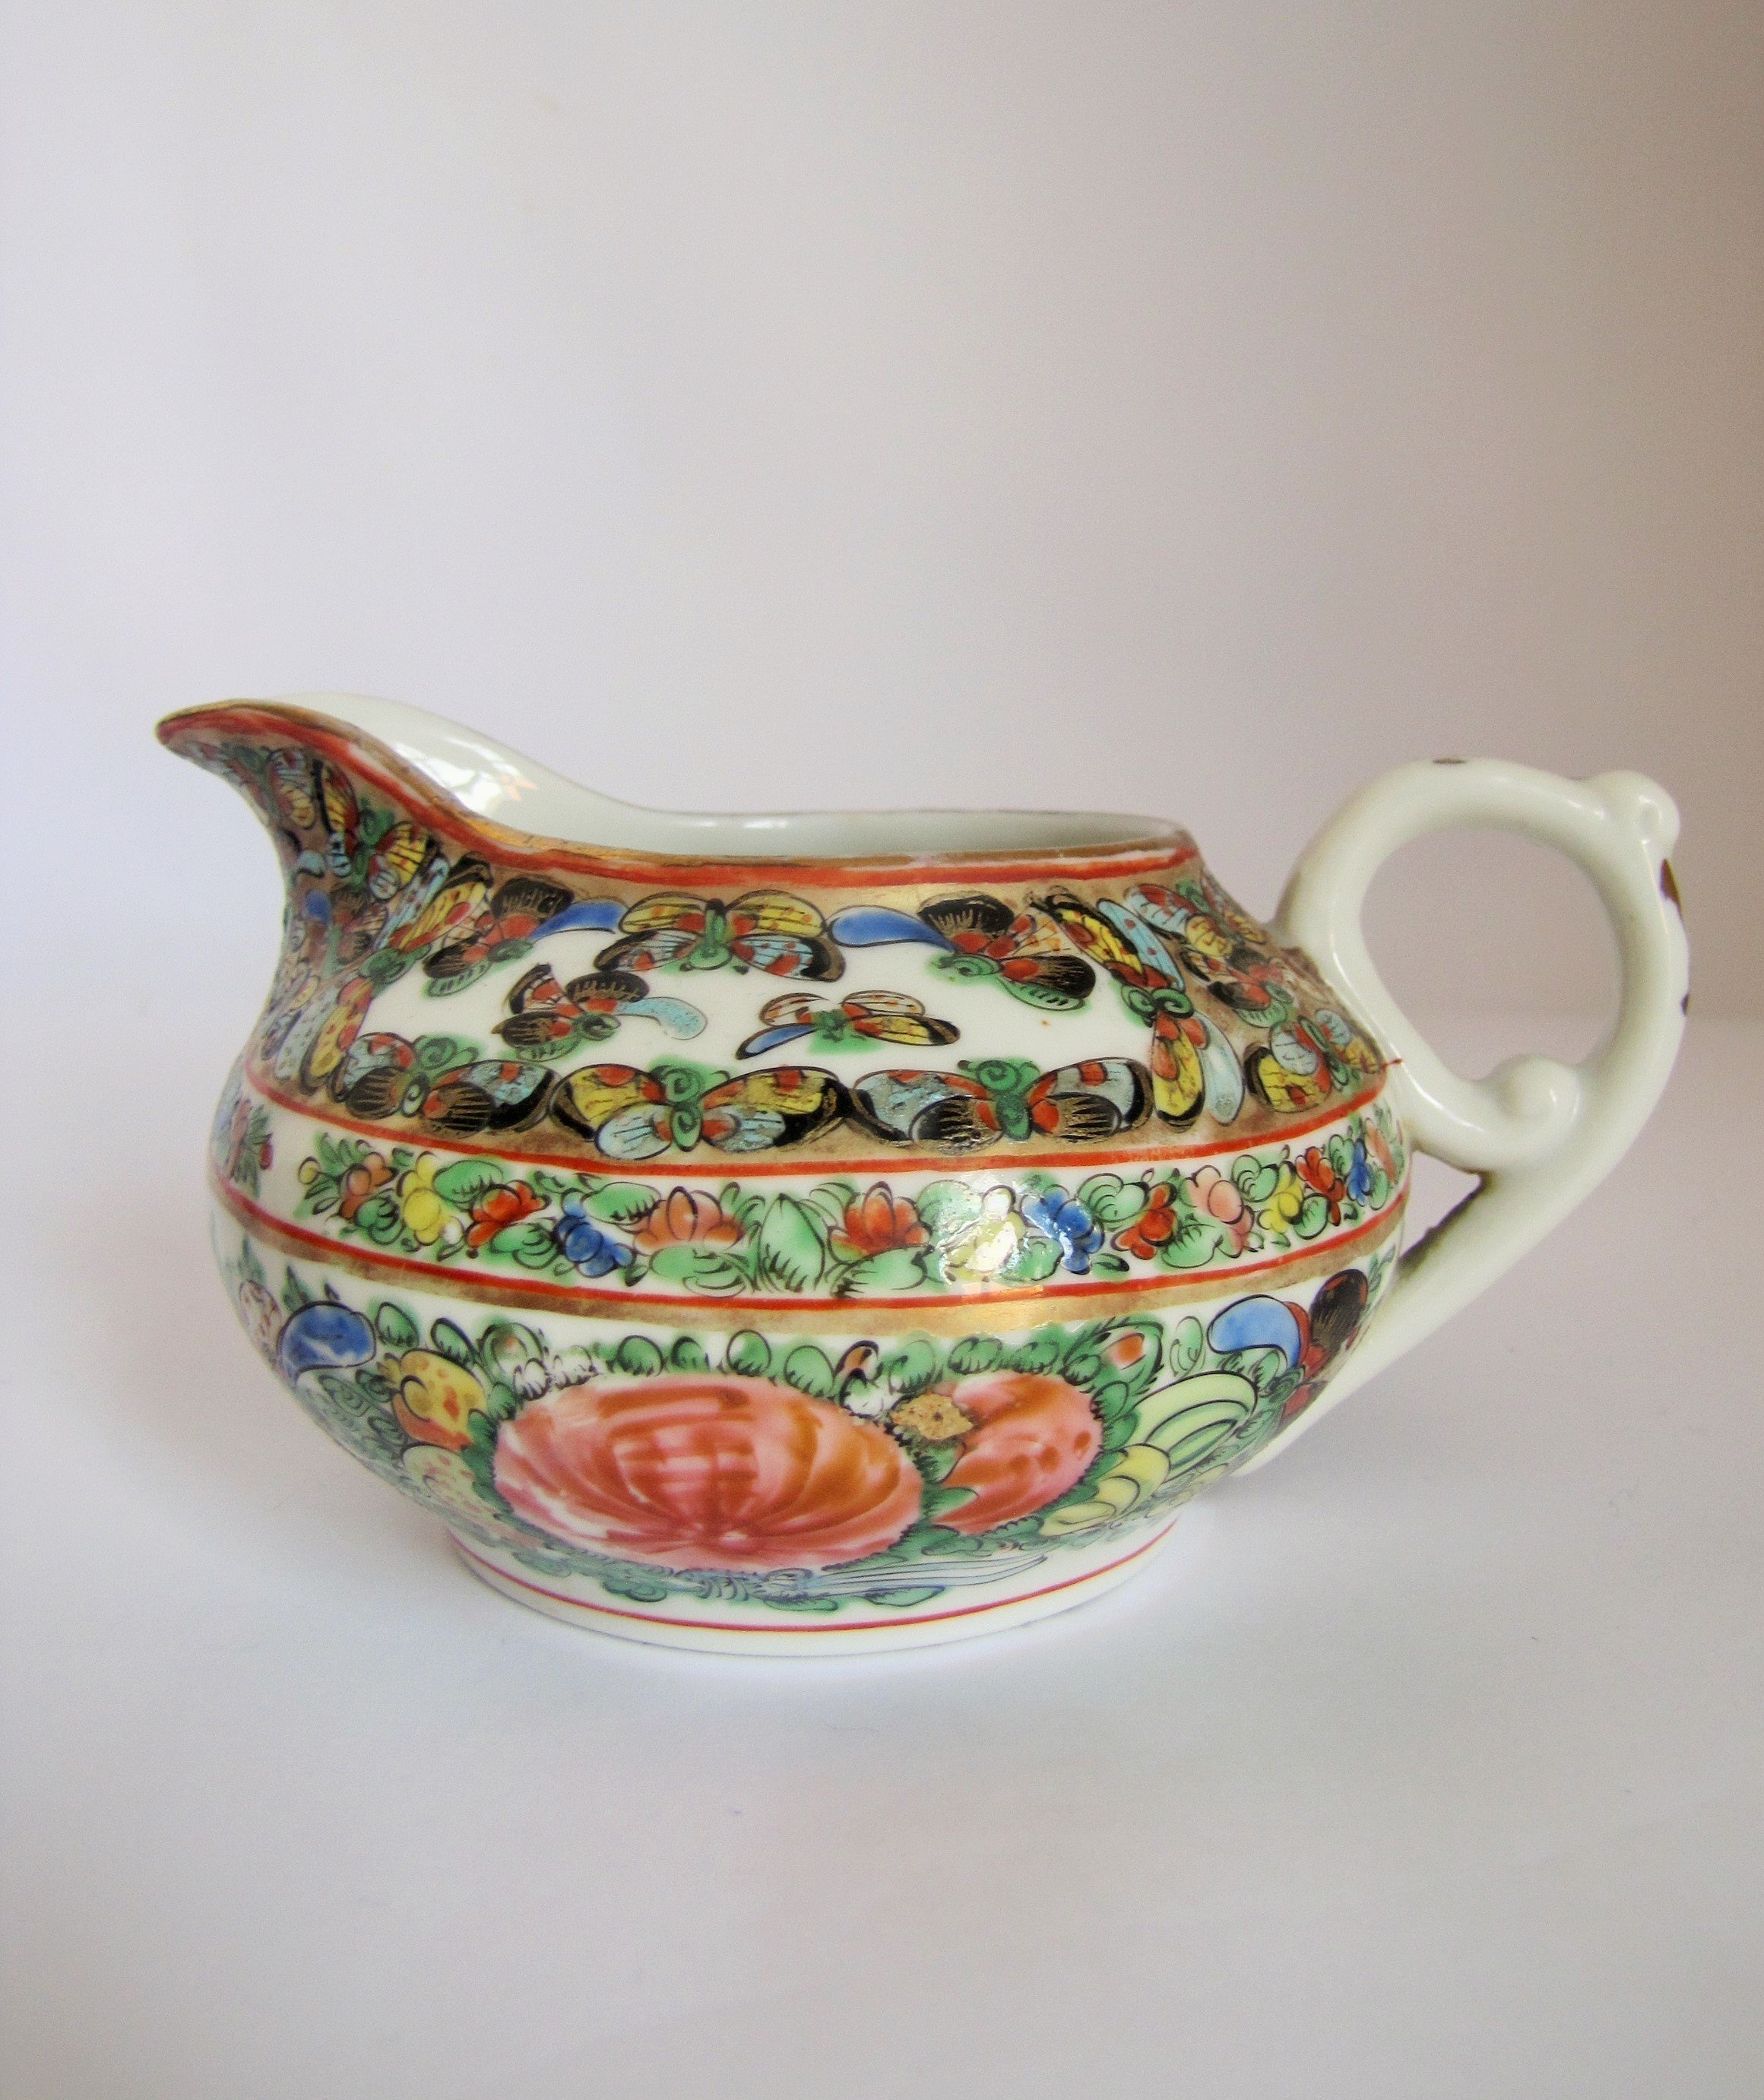 Antique Famille Rose Chinese Porcelain Jug Pitcher Collectable Chinese Pottery China Vinterior